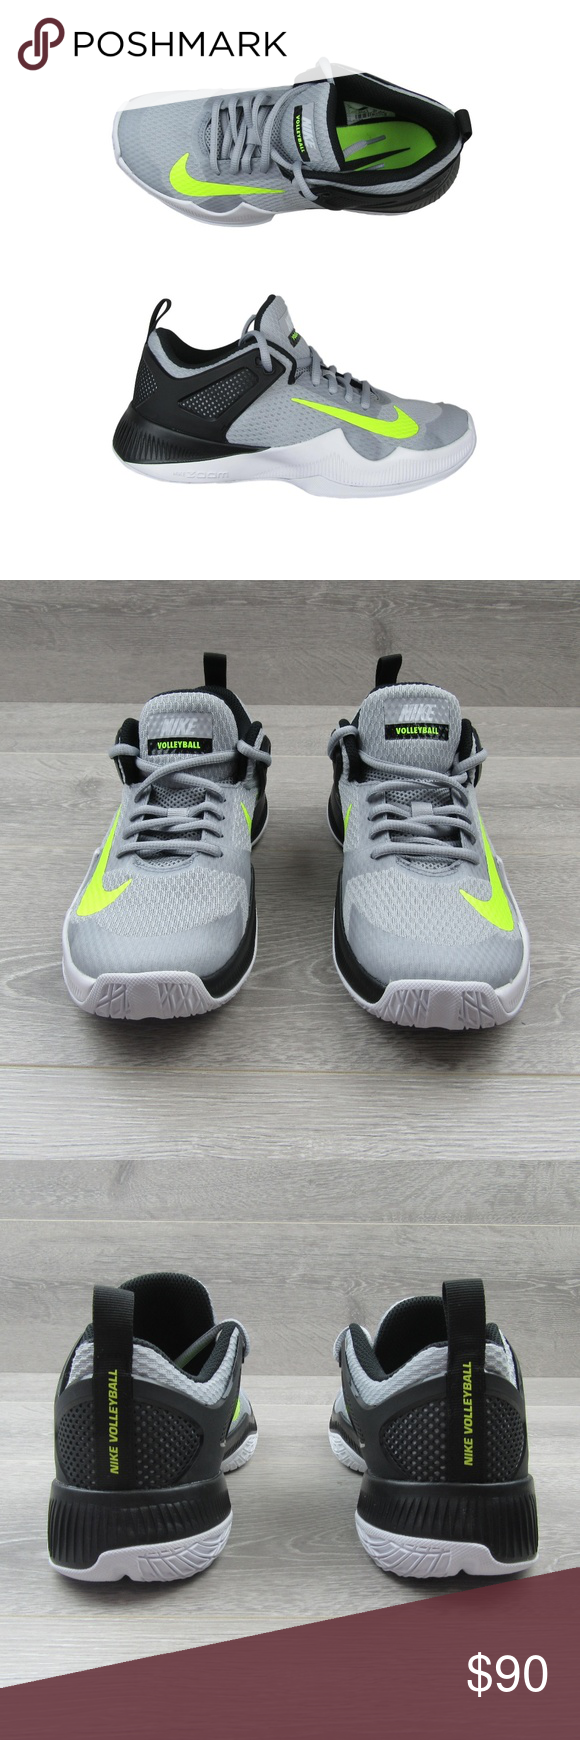 bf7d9d57e6a5 Nike Air Zoom HyperAce Size 7 Volleyball Shoes PRICE IS FIRM - NO OFFERS  PLEASE - Nike Air Zoom HyperAce Womens Volleyball Shoes Gray Volt 902367  007 ...